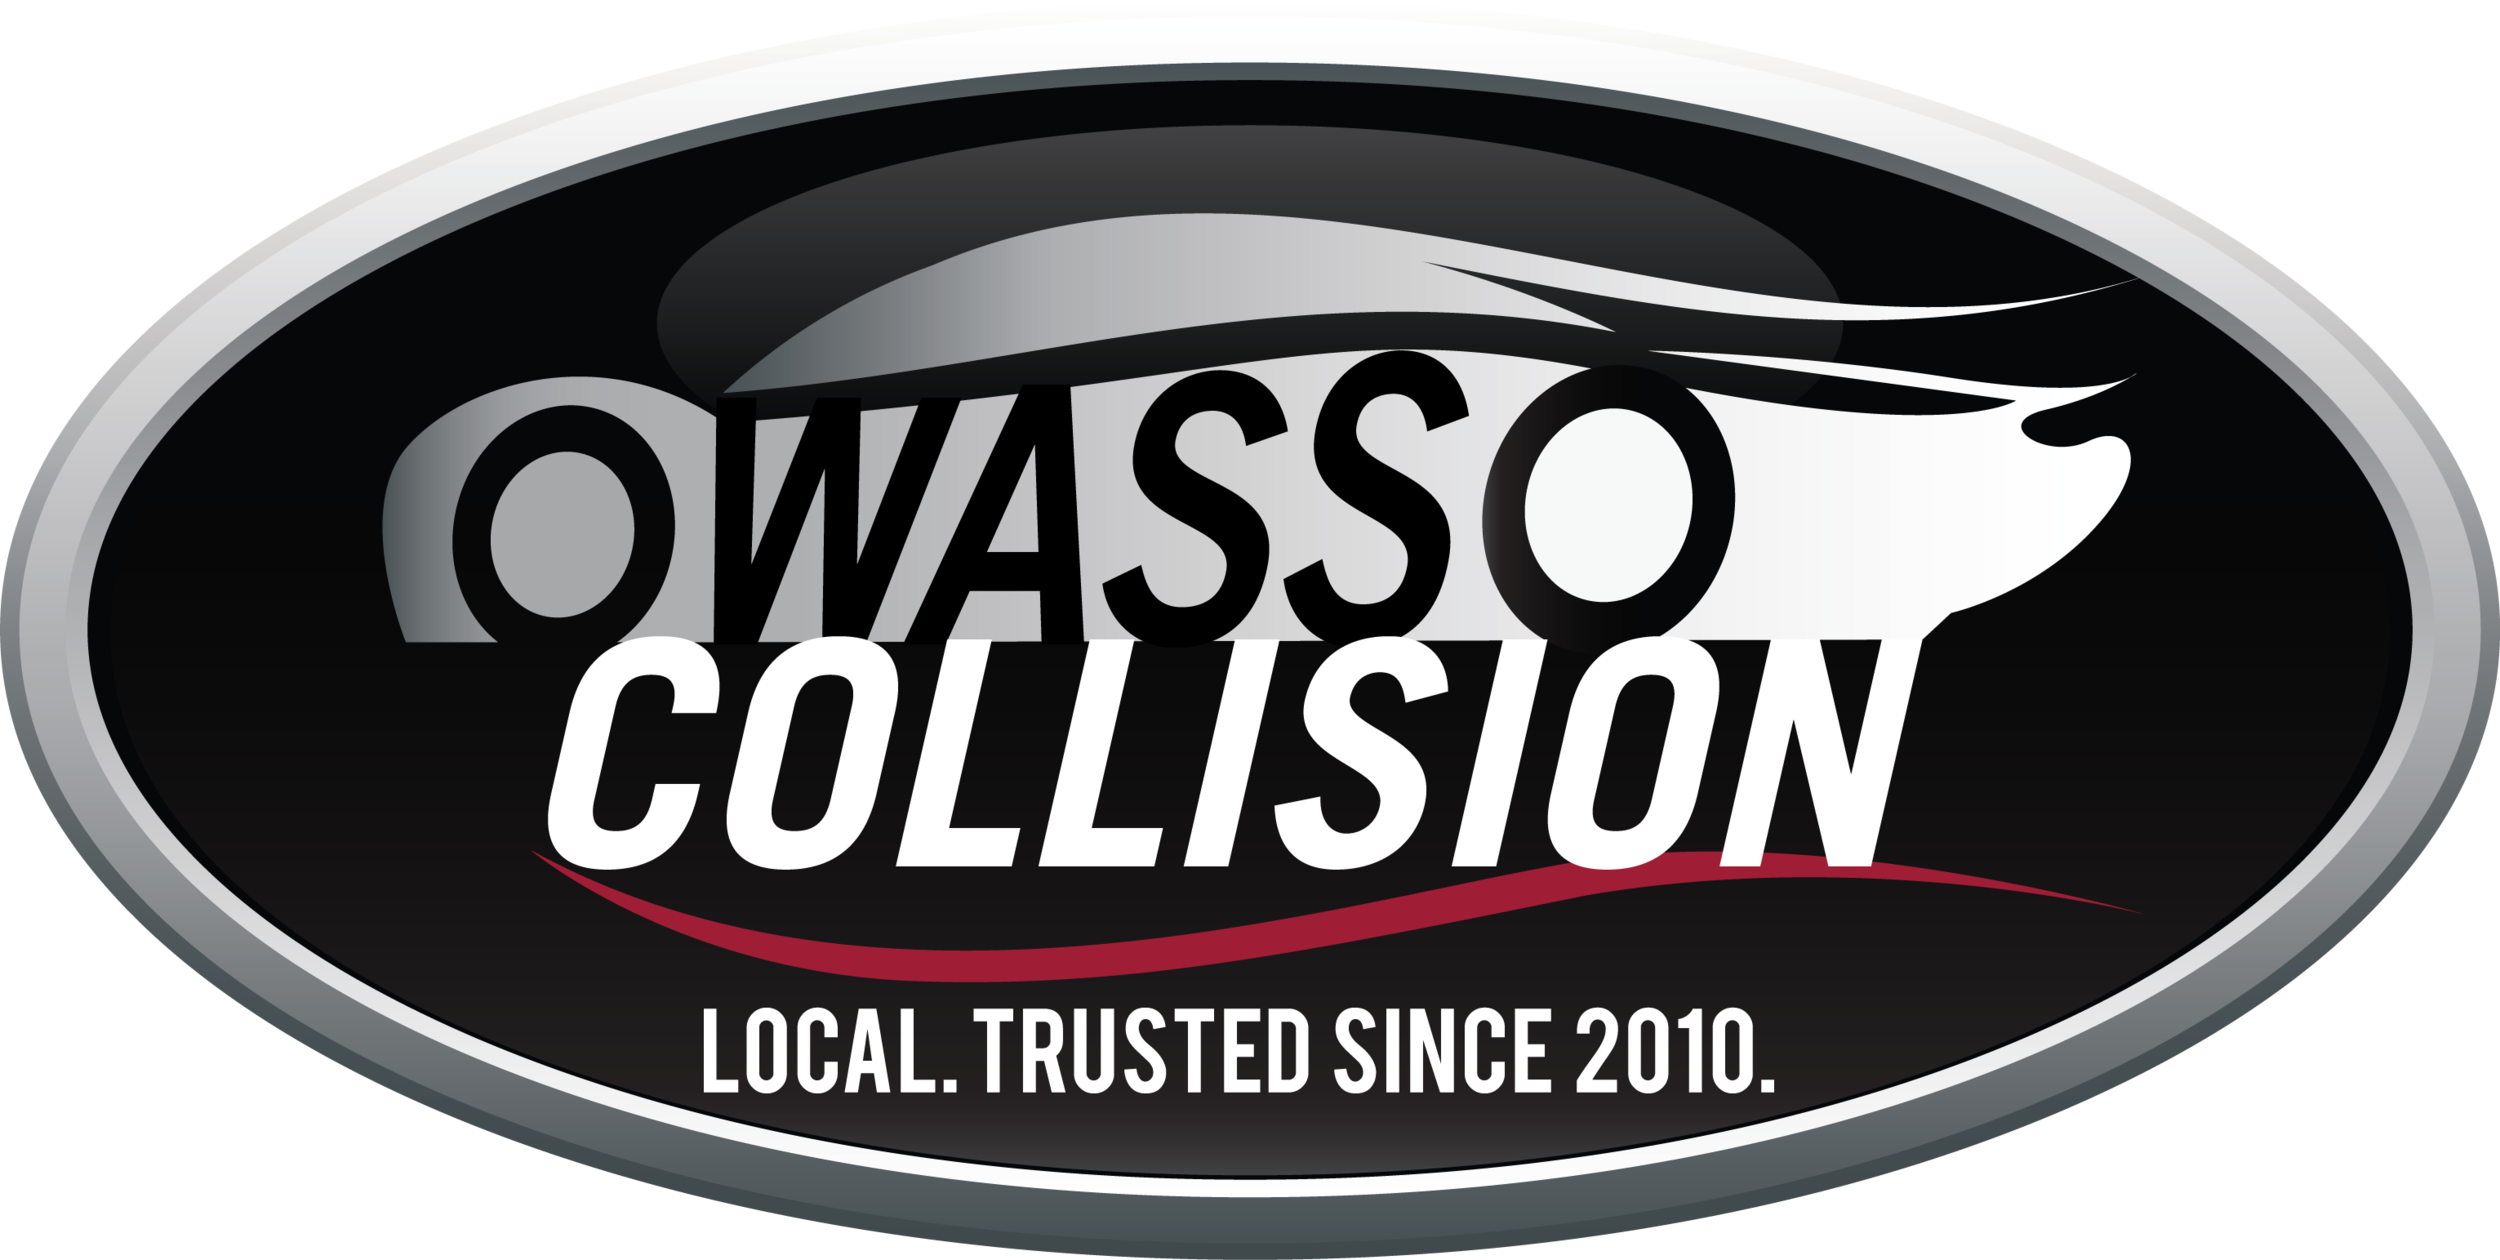 OWASSO COLLISION 4_color 2019 2 6.26.49 PM.png